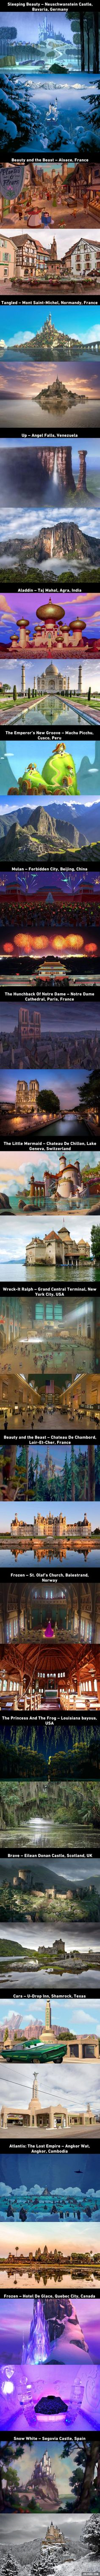 18 Beautiful Locations That Inspired Disney Movies 18 hermosos lugares que inspiraron a Disney Moives Disney Pixar, Film Disney, Disney Memes, Disney Quotes, Disney And Dreamworks, Disney Life Hacks, Disney Frozen, Disney Characters, Disney Love